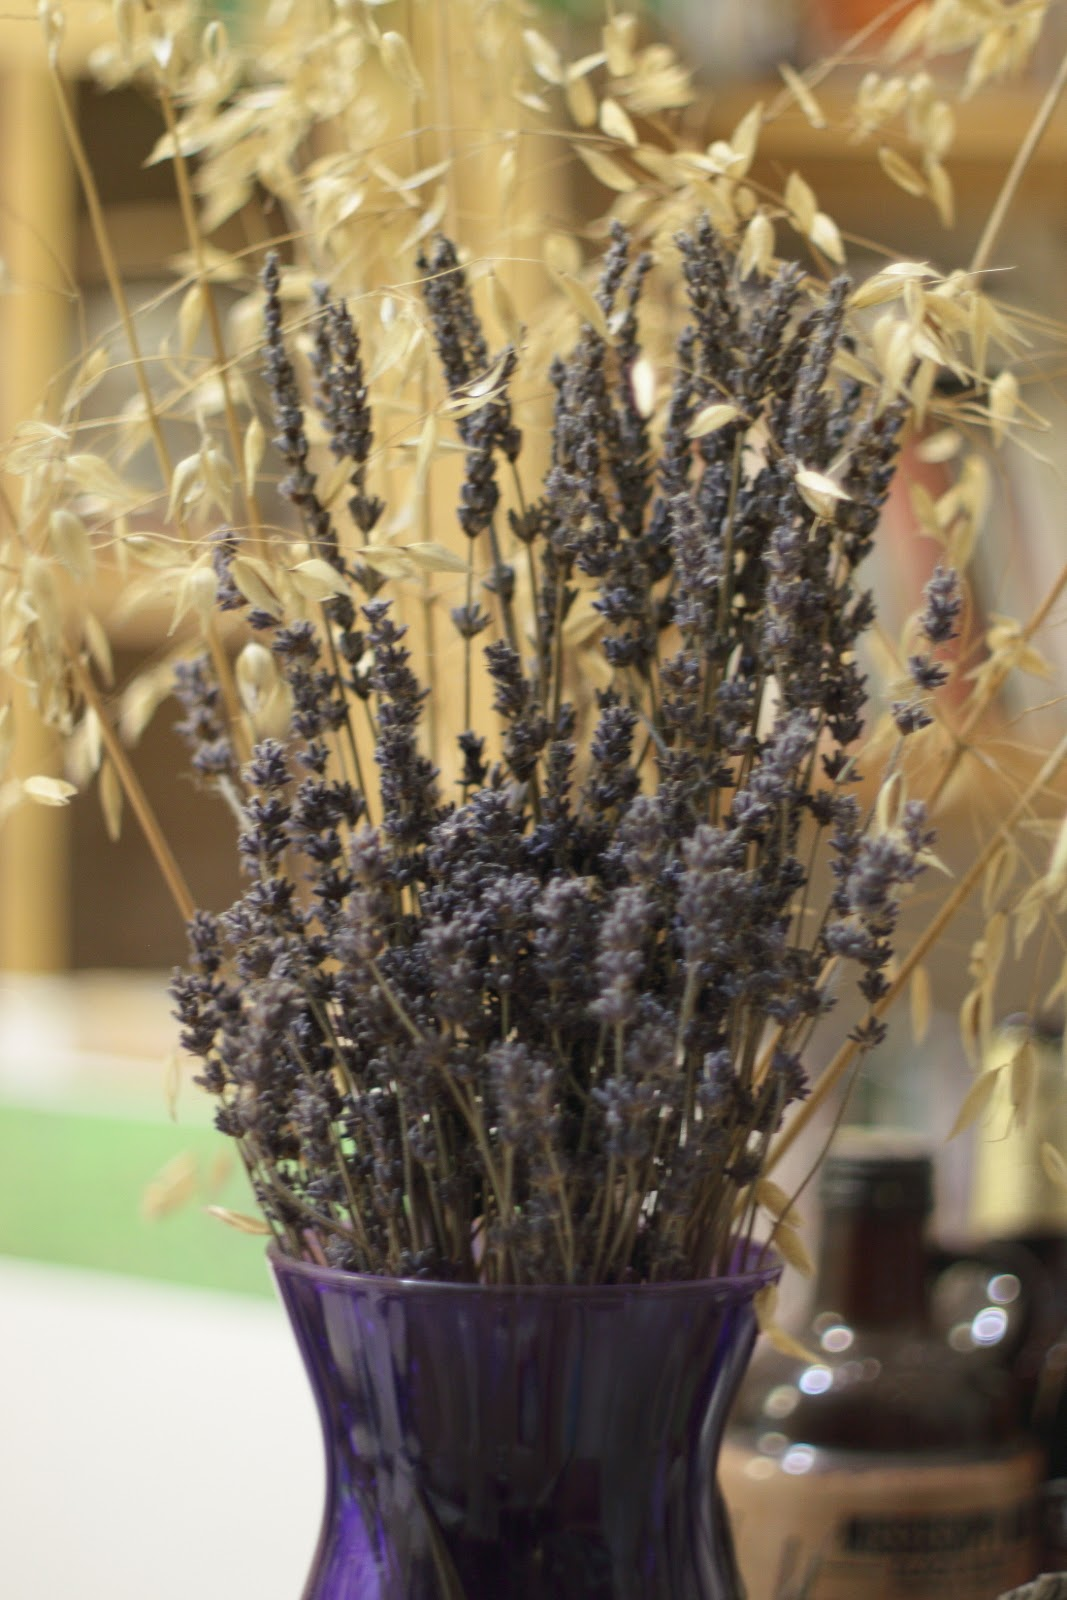 dried lavender, A Day in the Life, Photo-A-Day April 2015, Day 13, by Lisa Miller